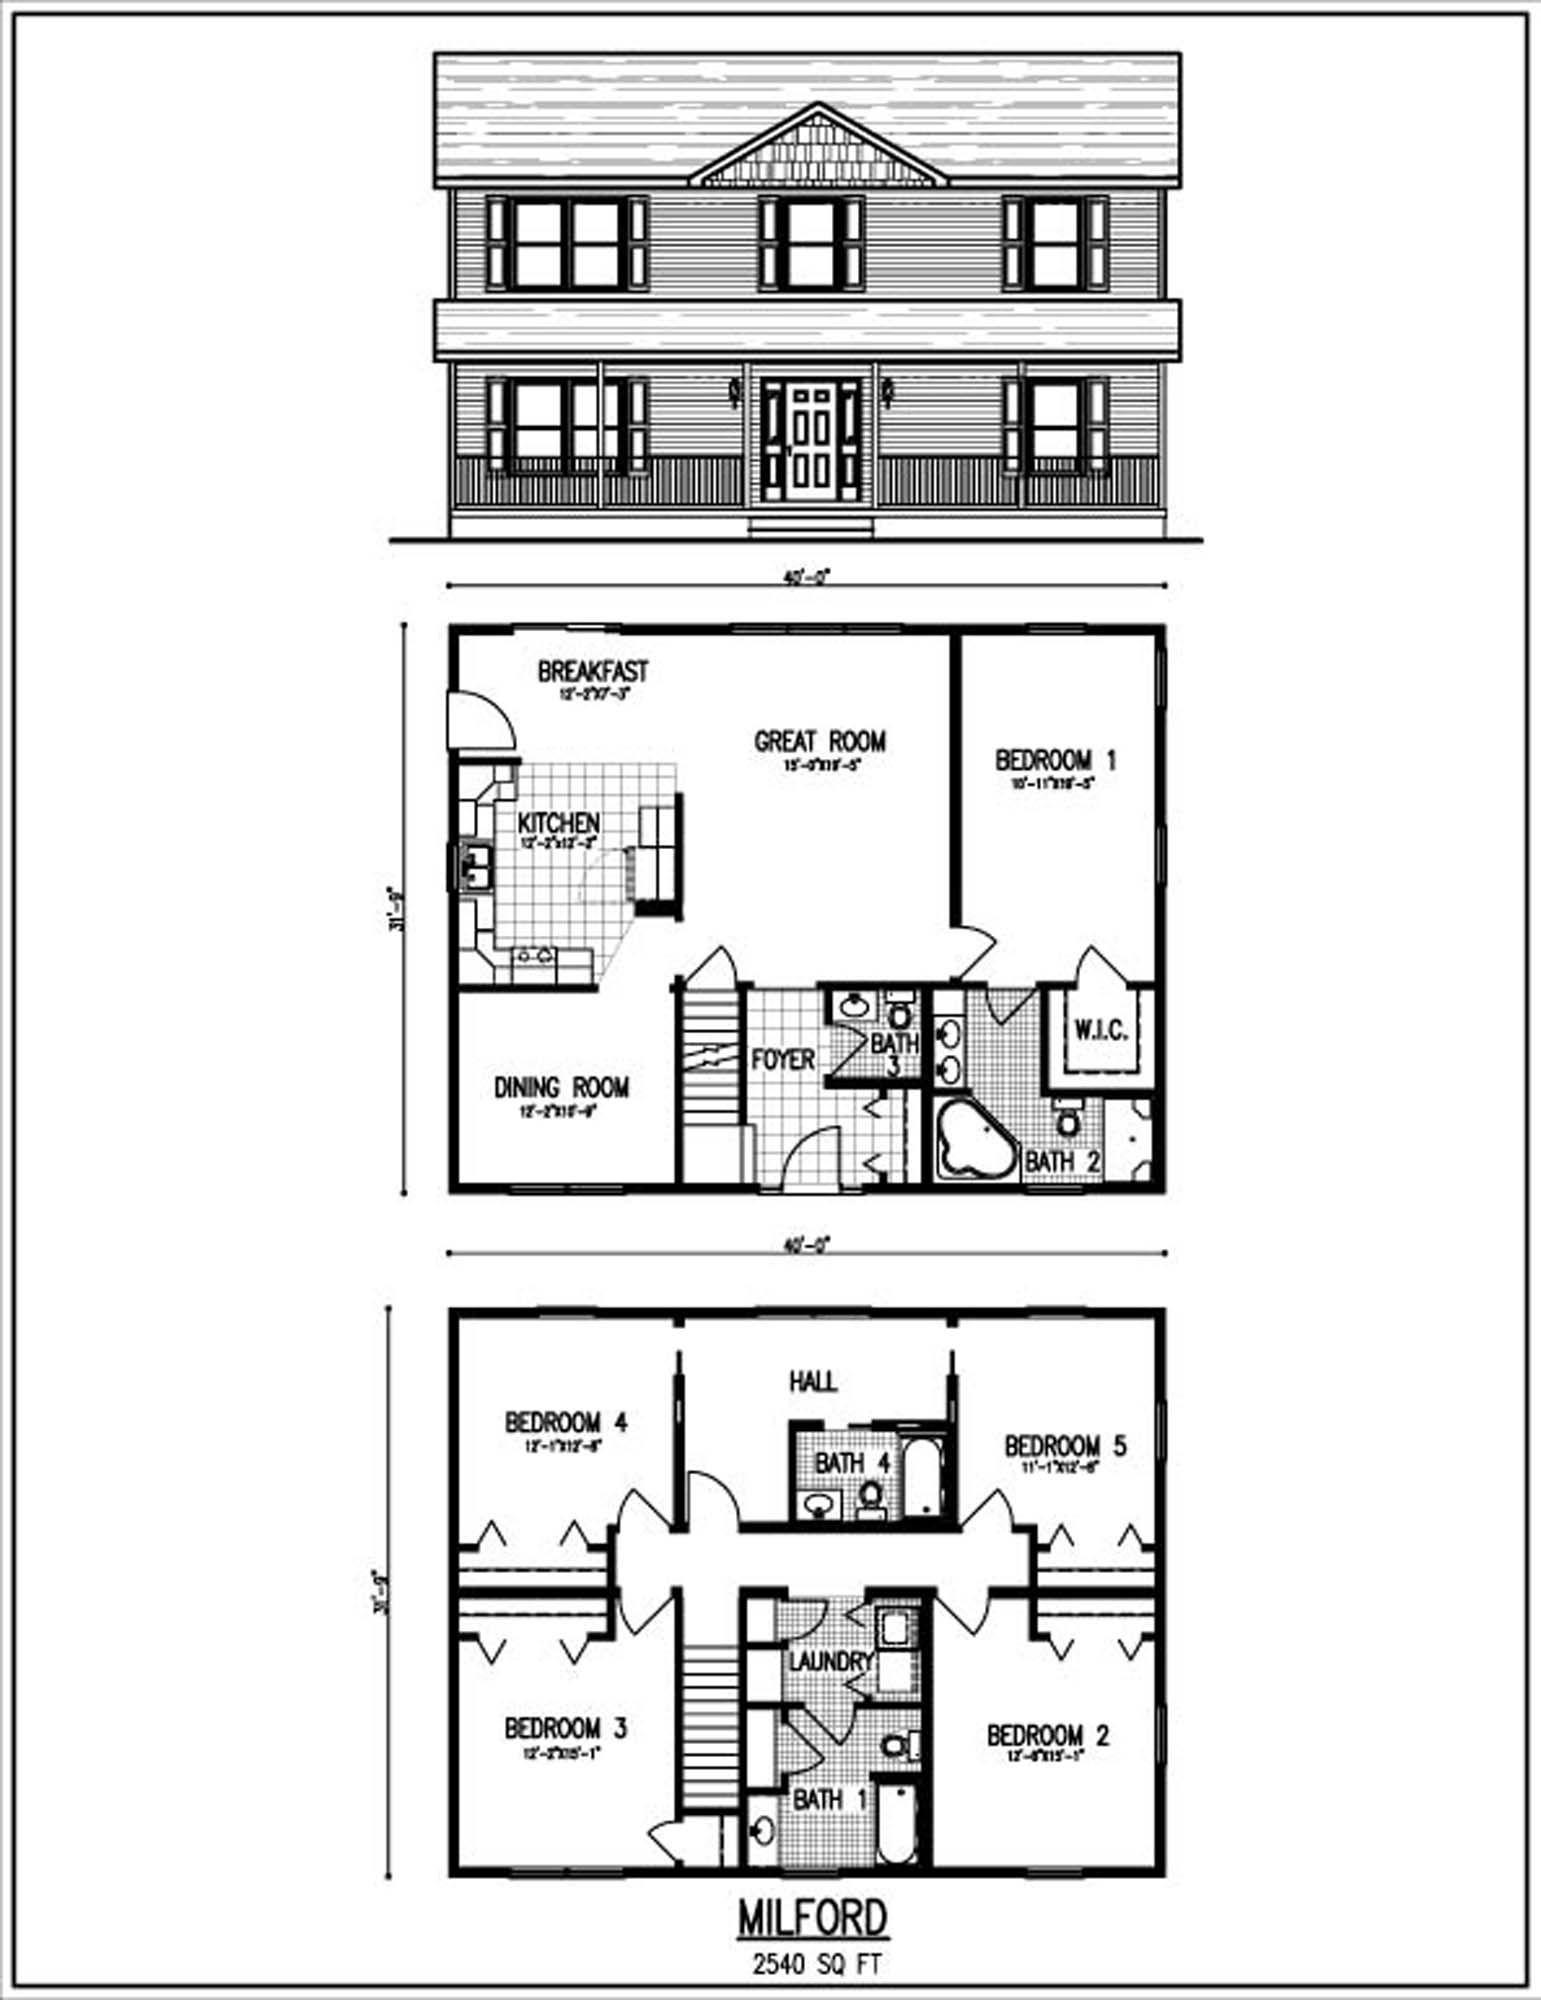 Beautiful 2 story house plans with upper level floor plan for Two story house layout design